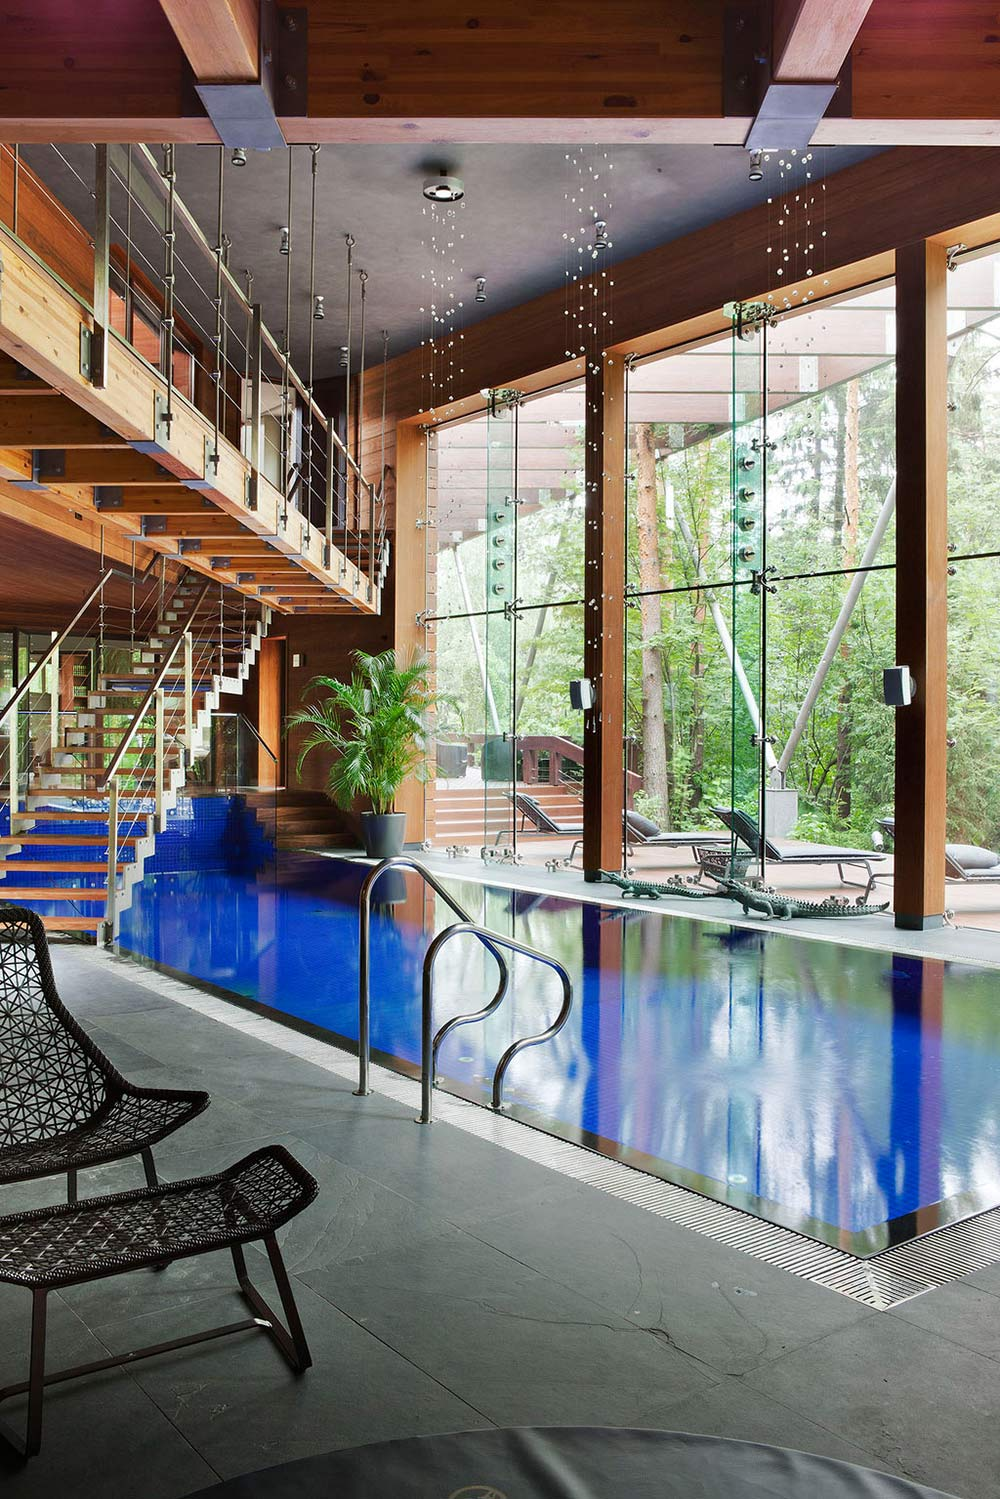 Sophisticated modern house near moscow by olga freiman - Inside swimming pool ...